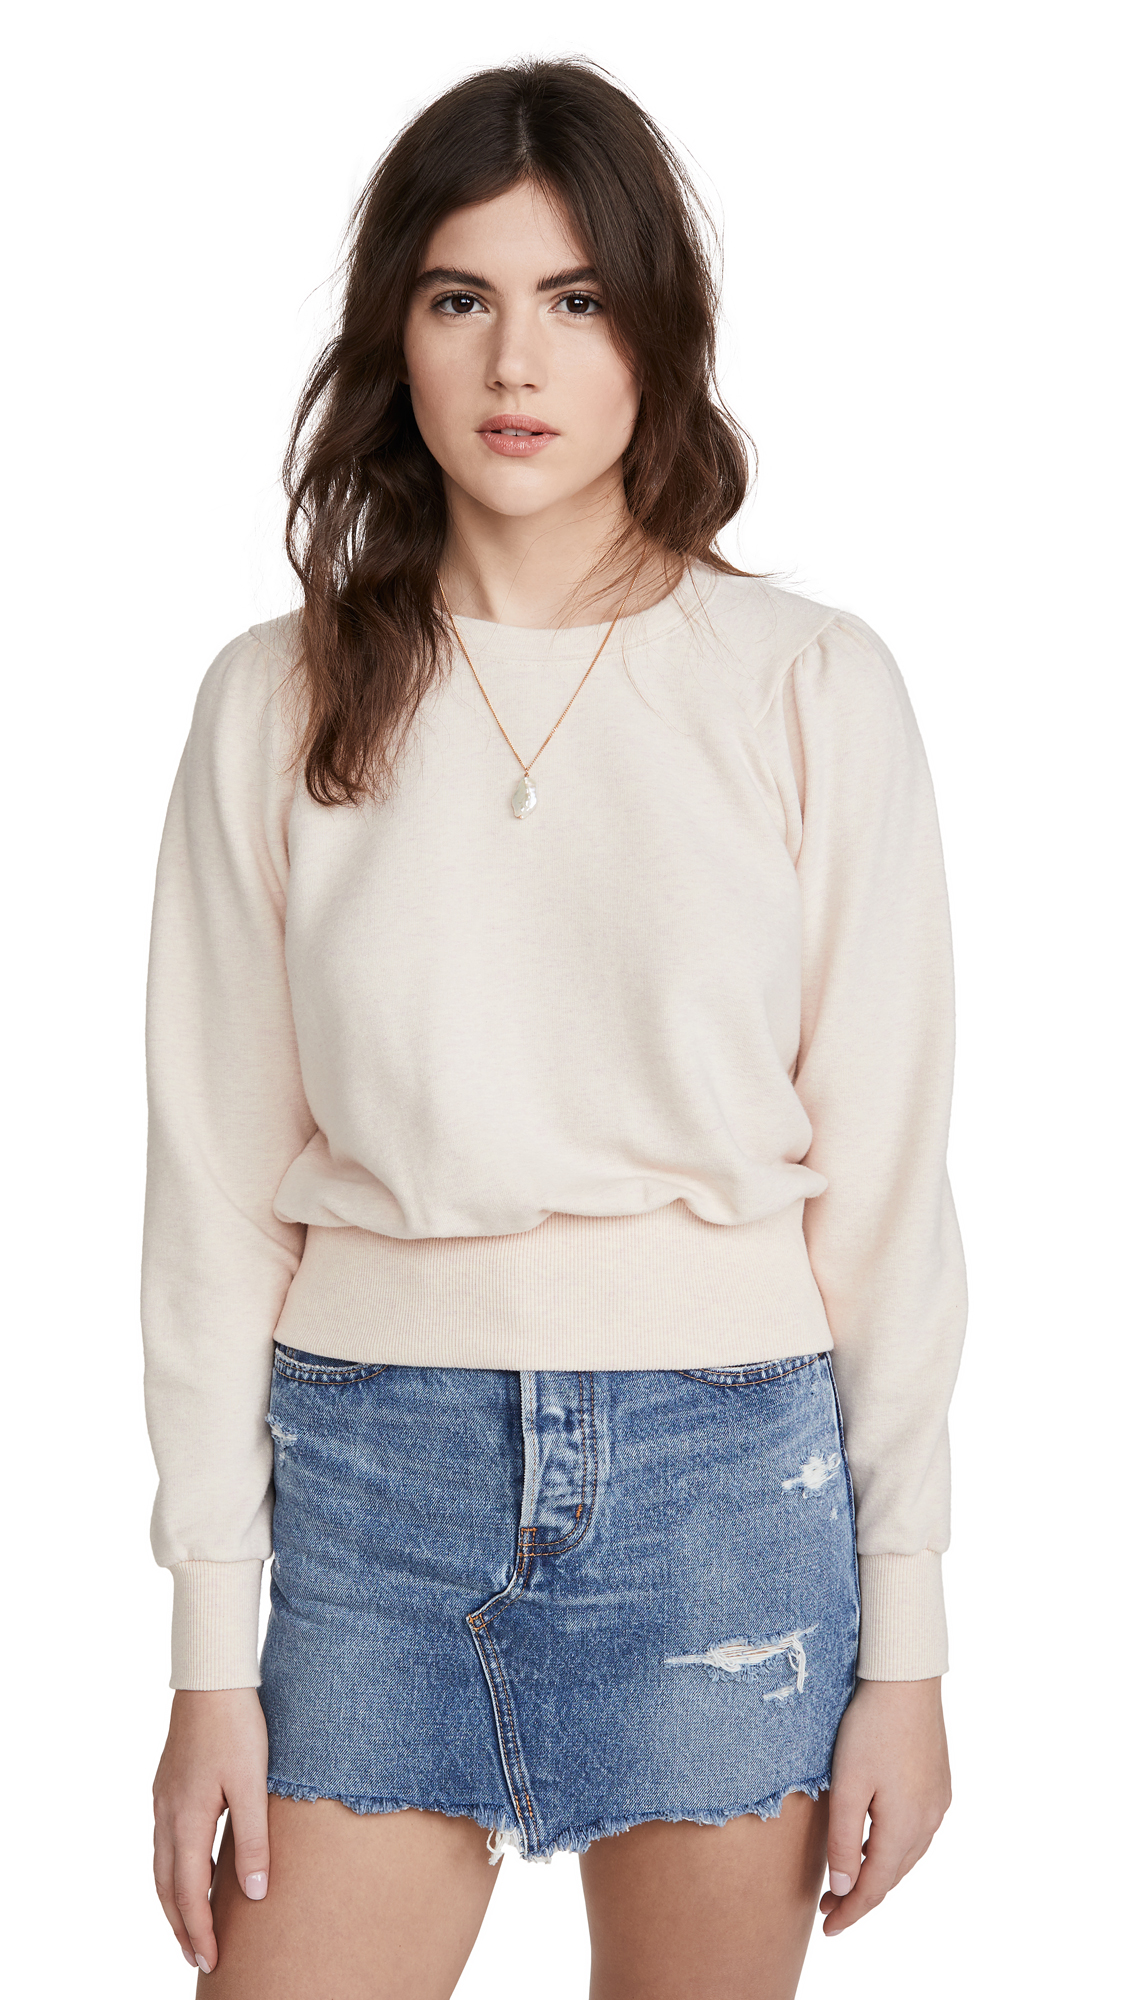 Madewell Heathered Puff Sleeve Raglan Sweatshirt - 30% Off Sale